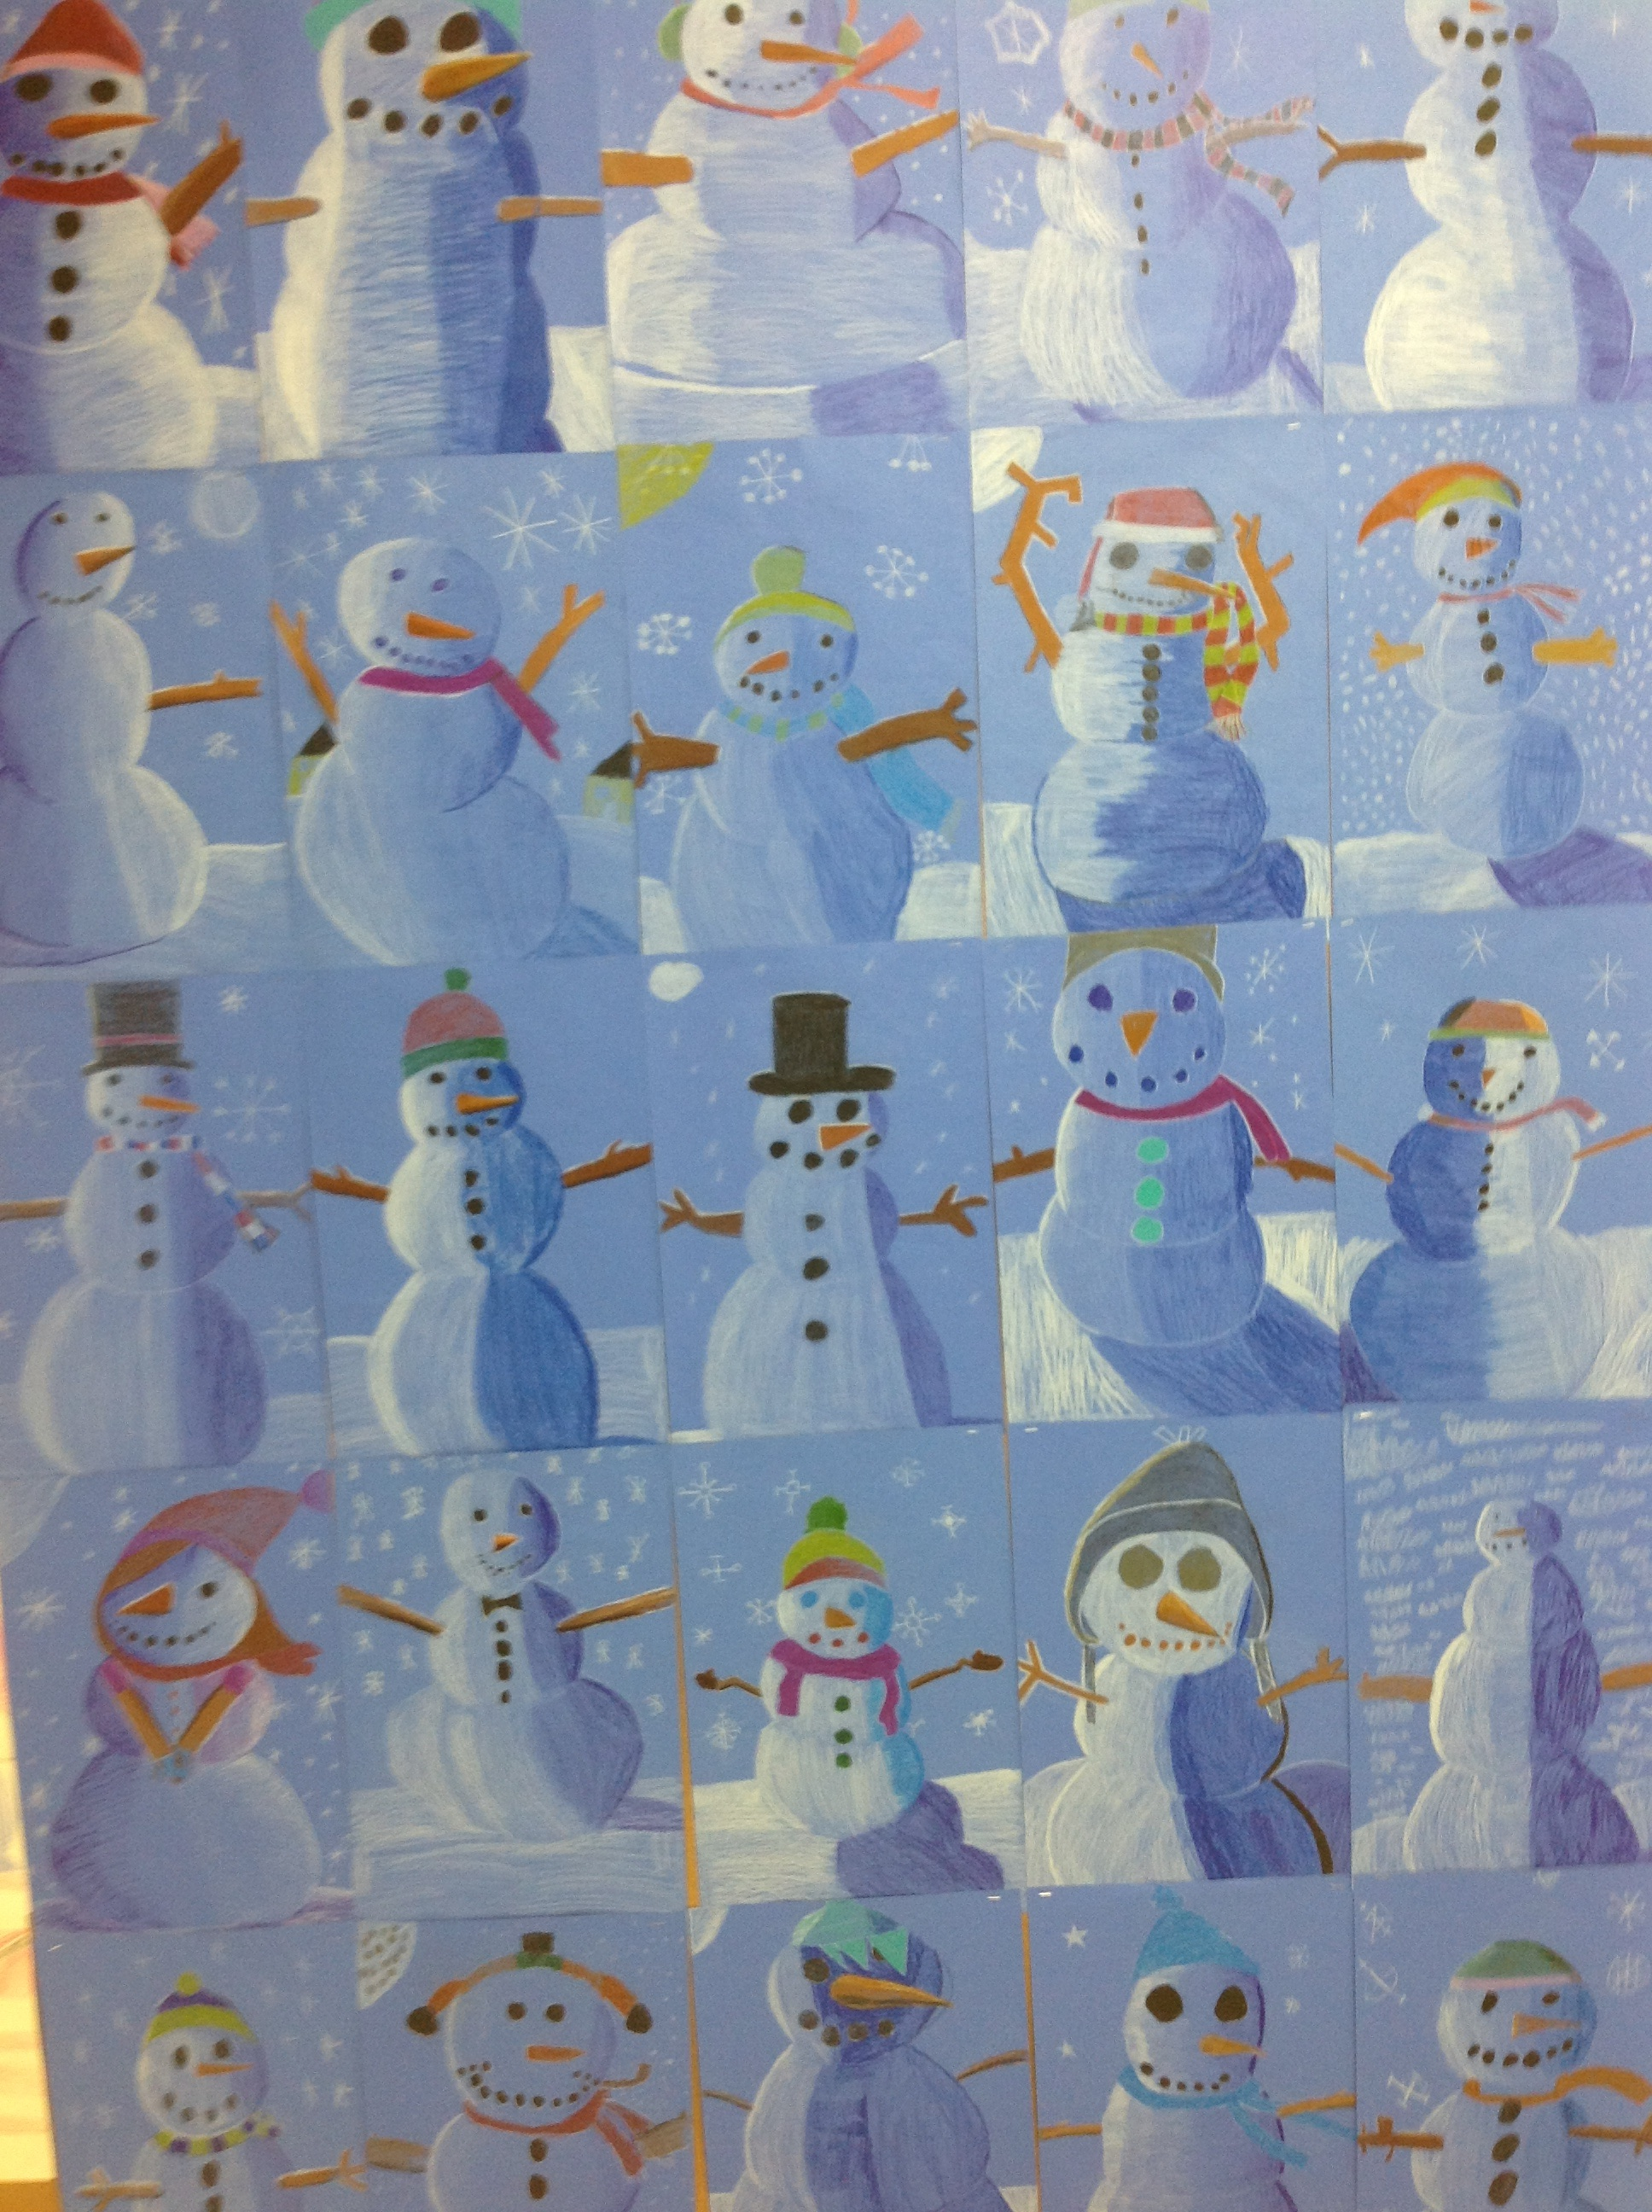 Snowmen Snowmen Everywhere Mrs Yang S Art Room